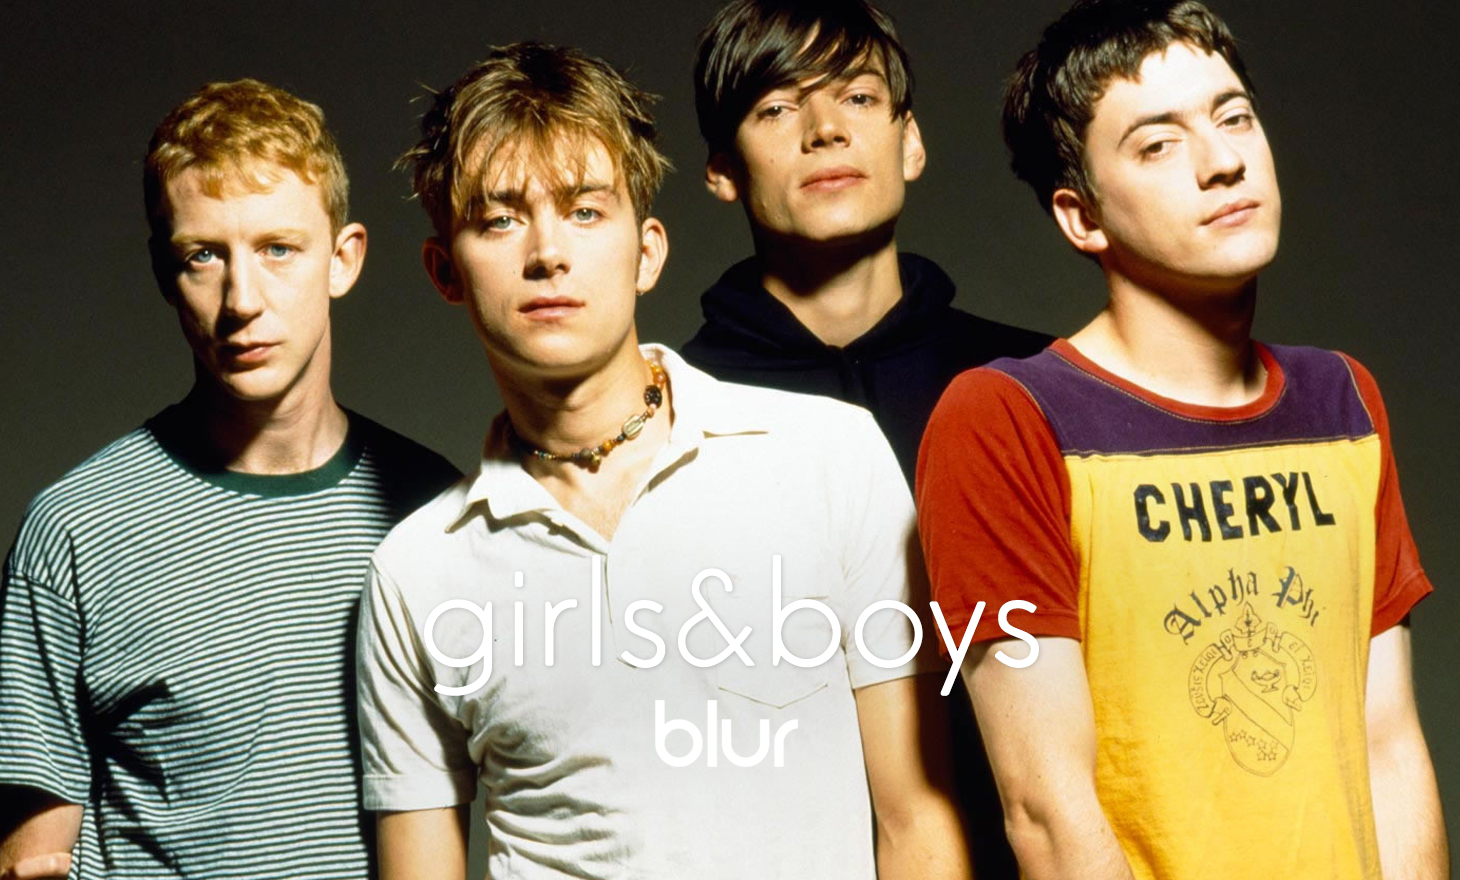 Blur : Girls & Boys